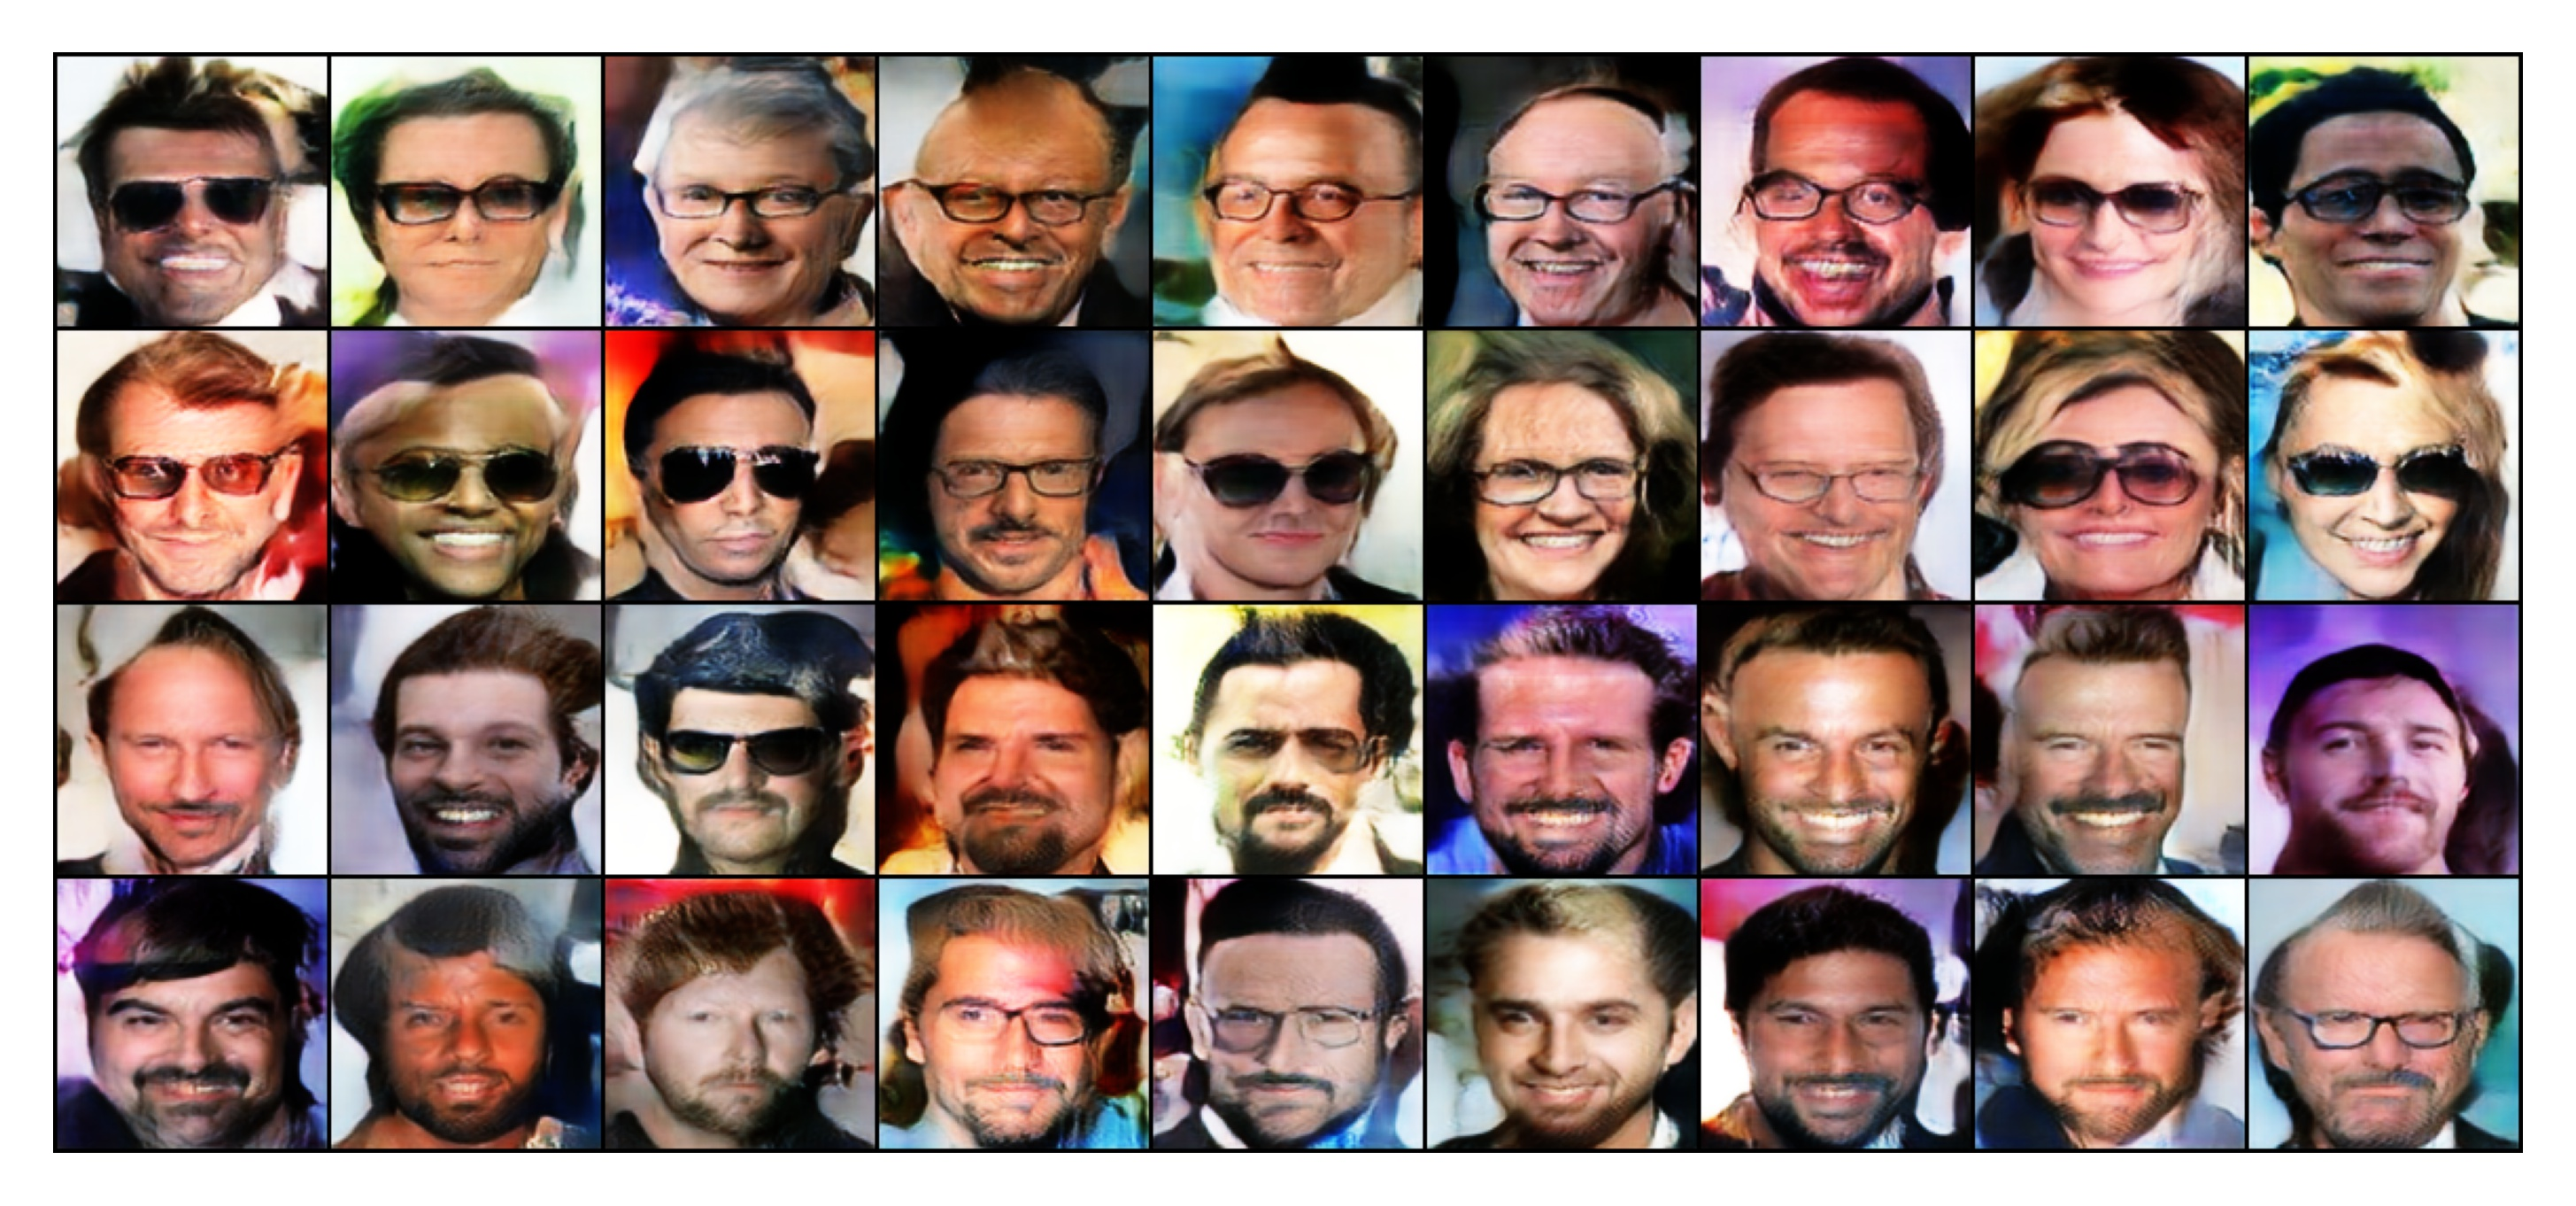 Images generated with Langevin Monte Carlo sampling conditioned on the class eyeglasses (top two rows) and on the class facial hairs (last two rows).